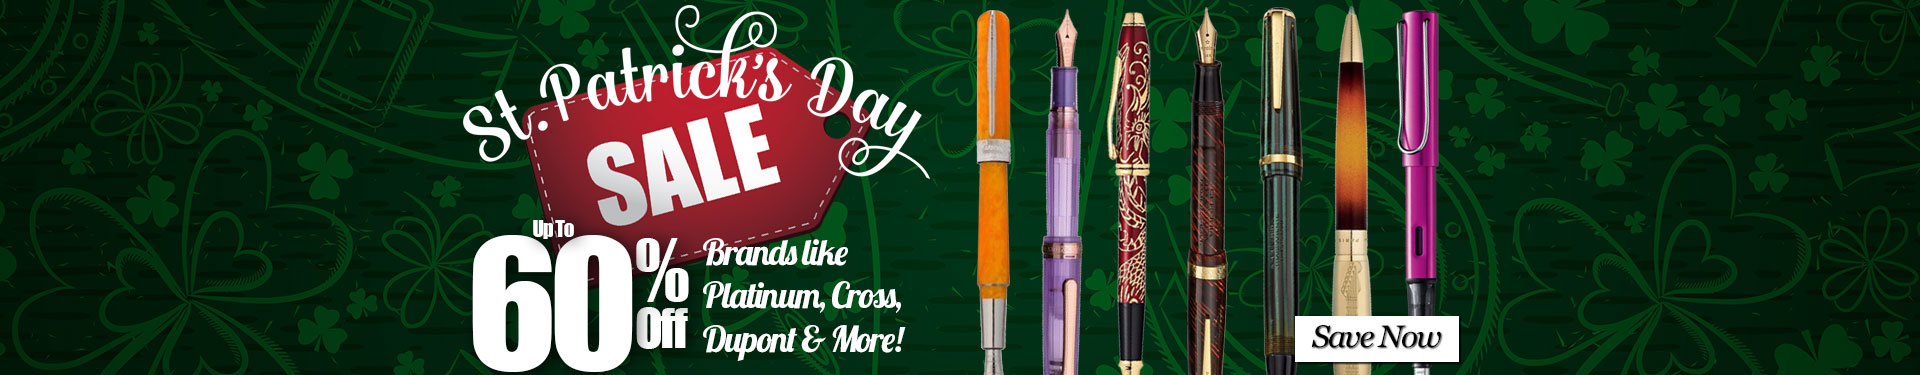 St. Patrick's Day Sale - Up to 60% Off